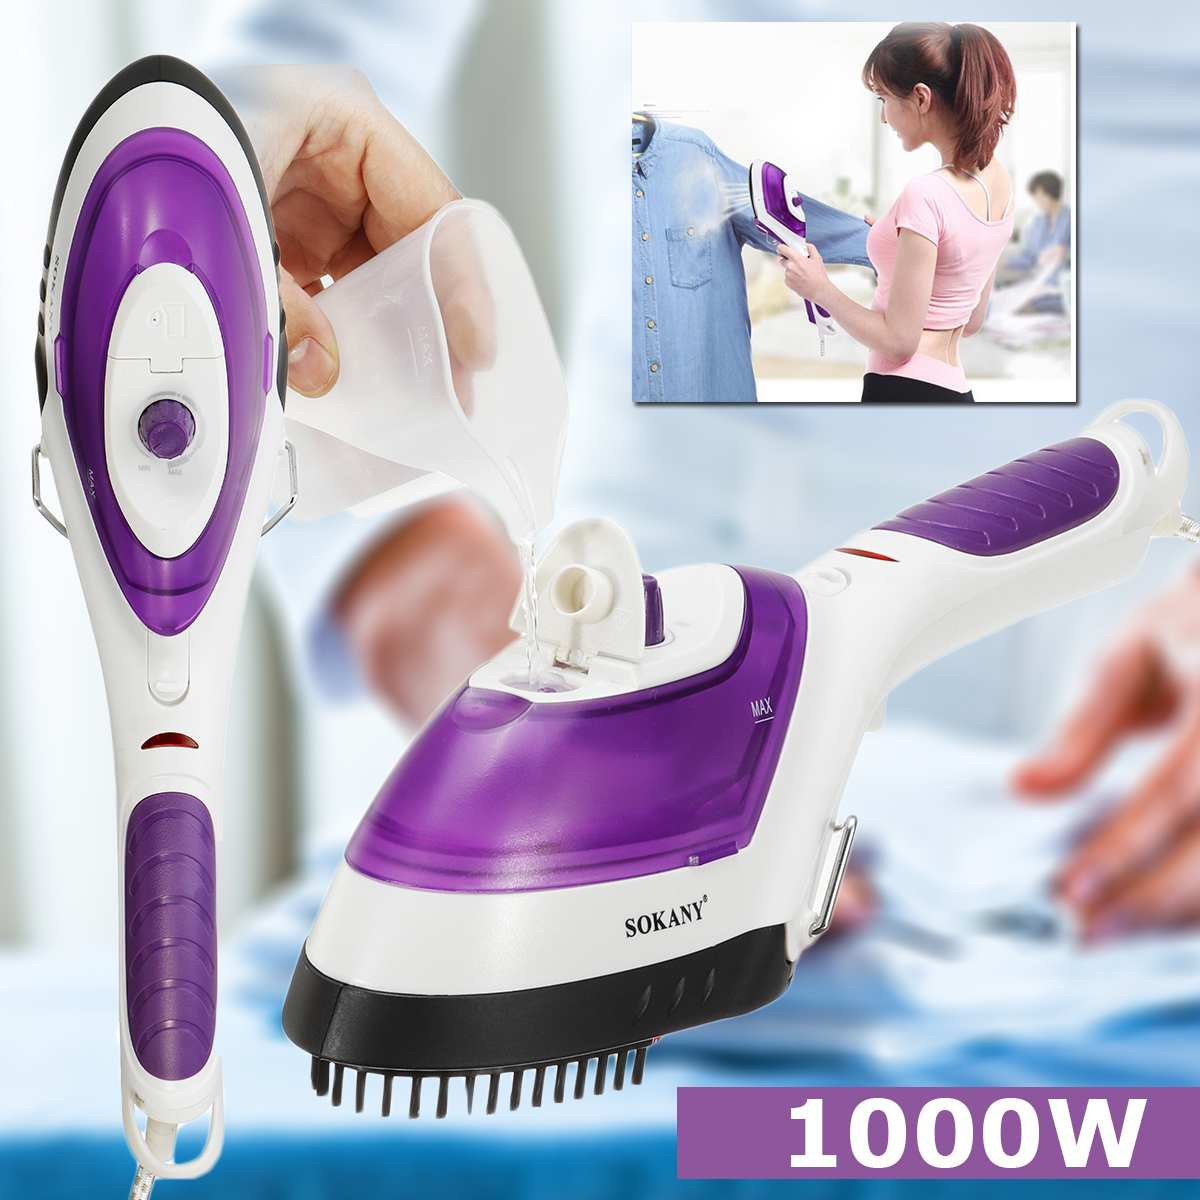 1000W 220V EU Plug Handheld Clothes Garment Steamer Fast-Heat Portable Steam Iron Home Travel Capacity 70ml Strong Hotels Simply1000W 220V EU Plug Handheld Clothes Garment Steamer Fast-Heat Portable Steam Iron Home Travel Capacity 70ml Strong Hotels Simply